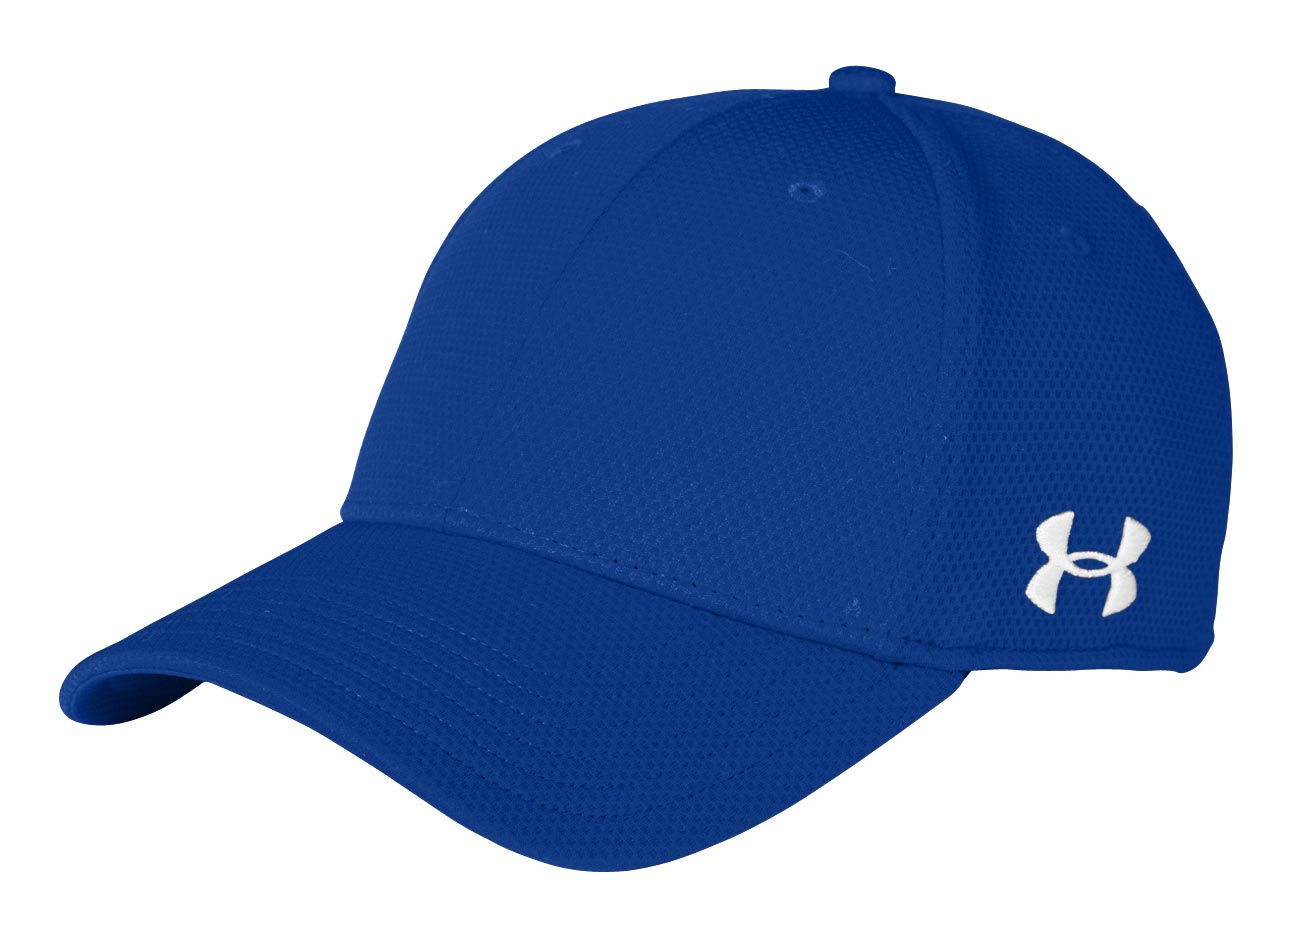 Custom Under Armour Curved Bill Solid Cap fe29a8ed92b